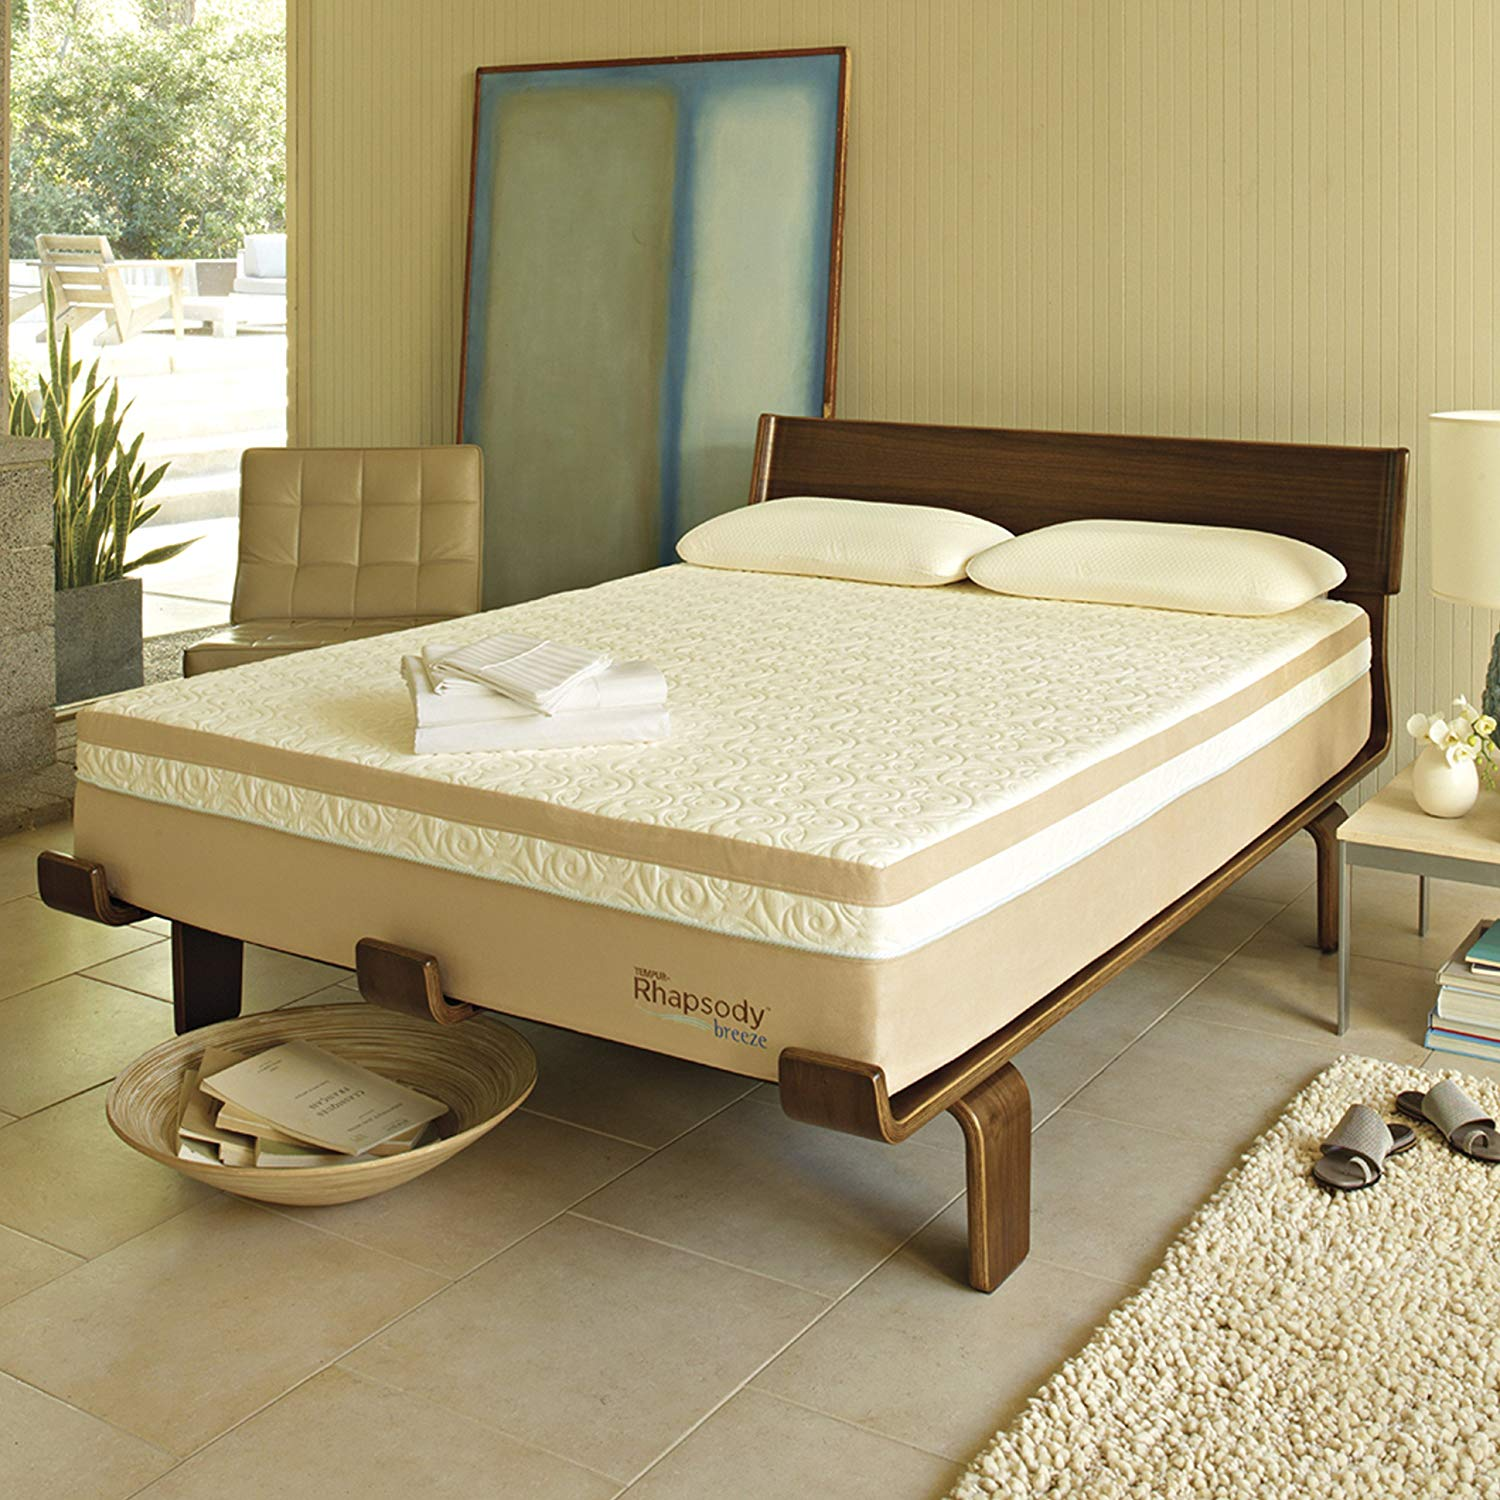 Contour Rhapsody Tempurpedic Reviews By www.snoremagazine.com